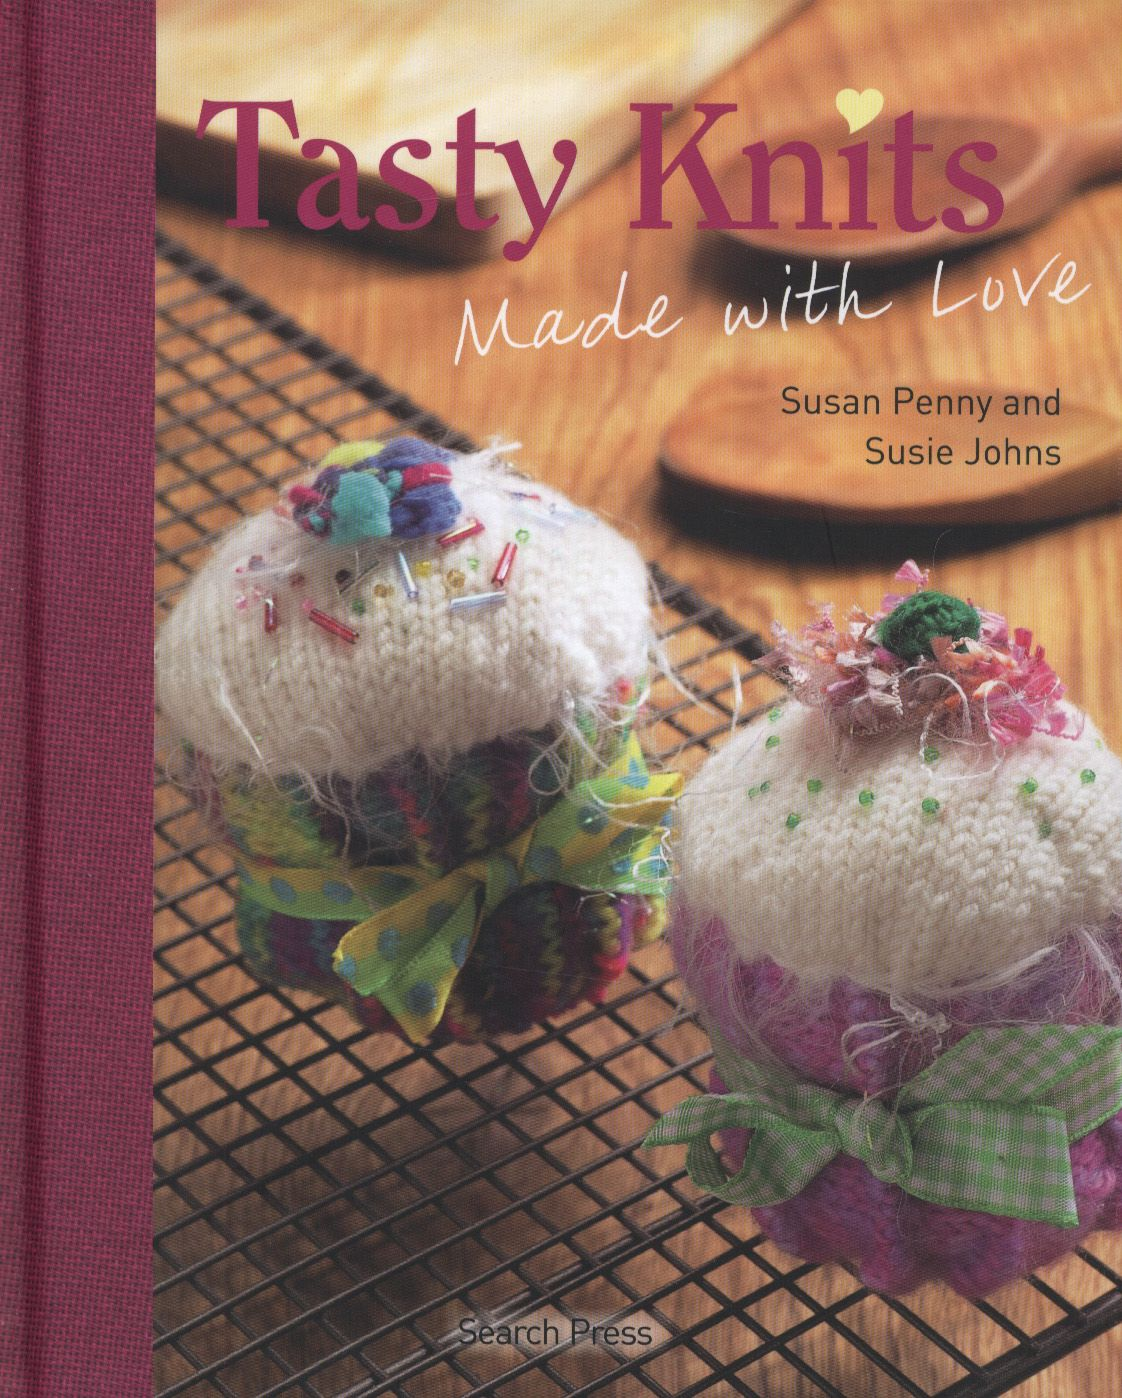 Tasty knits made with love susan penny and susie johns free cupcake knitting pattern from the book tasty knits through the making spot bankloansurffo Image collections